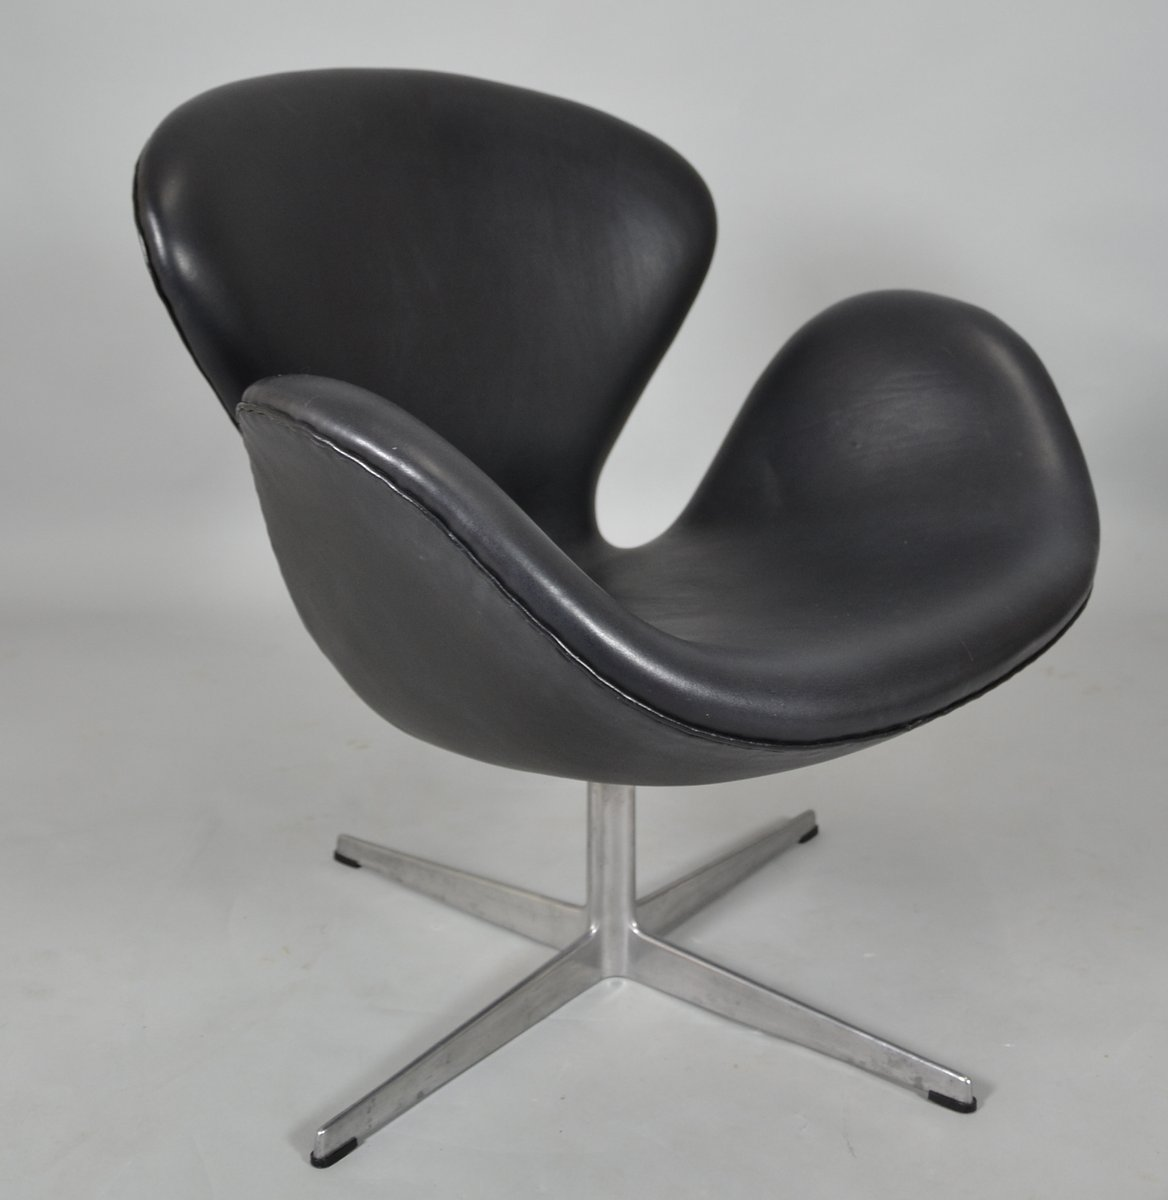 mid century black leather swan chair by arne jacobsen for fritz hansen for sale at pamono. Black Bedroom Furniture Sets. Home Design Ideas